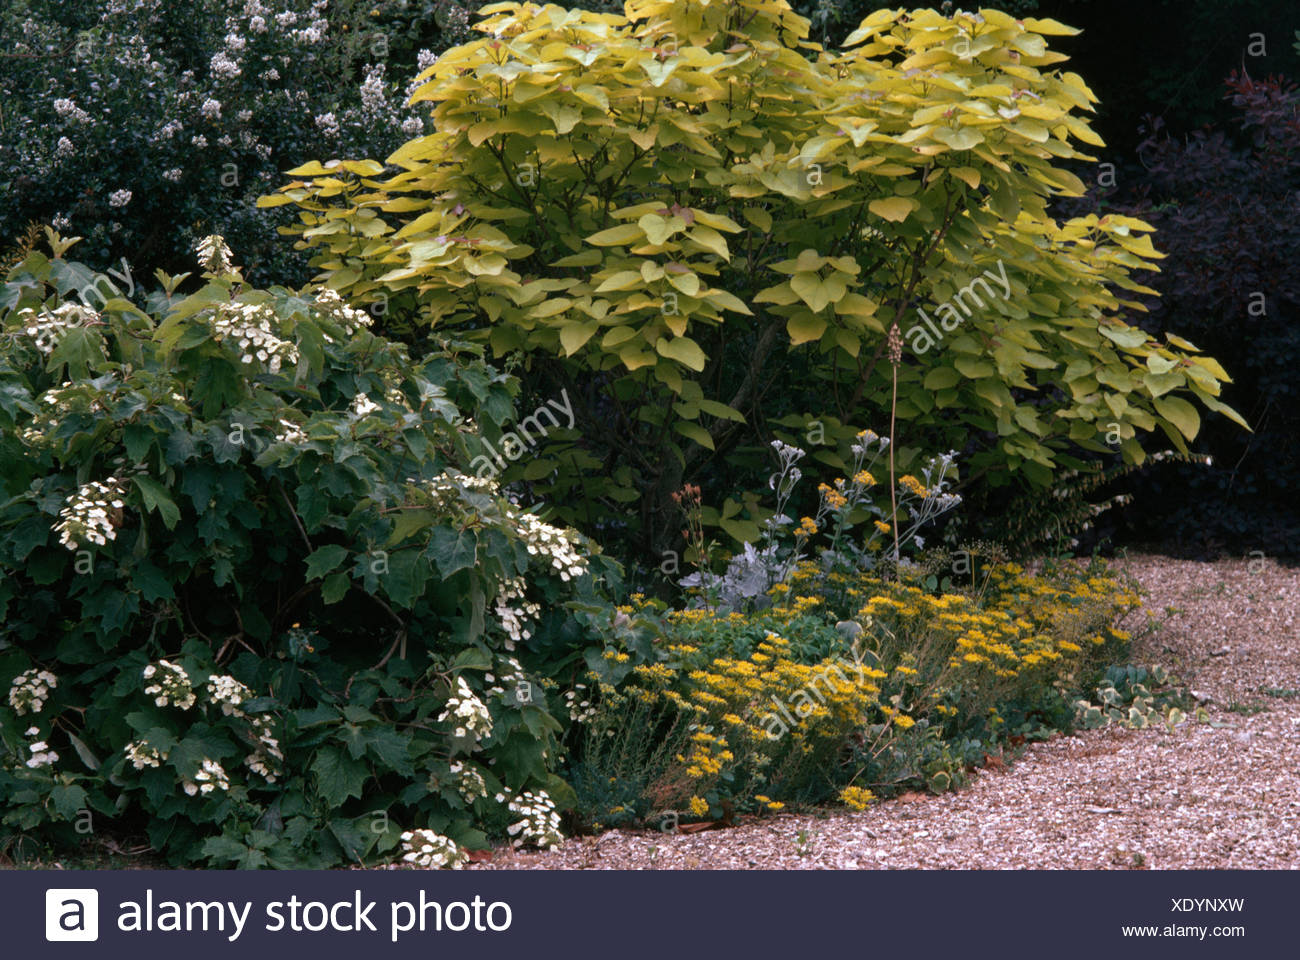 Catalpa Tree And A White Flowering Shrub In A Garden Border With Low